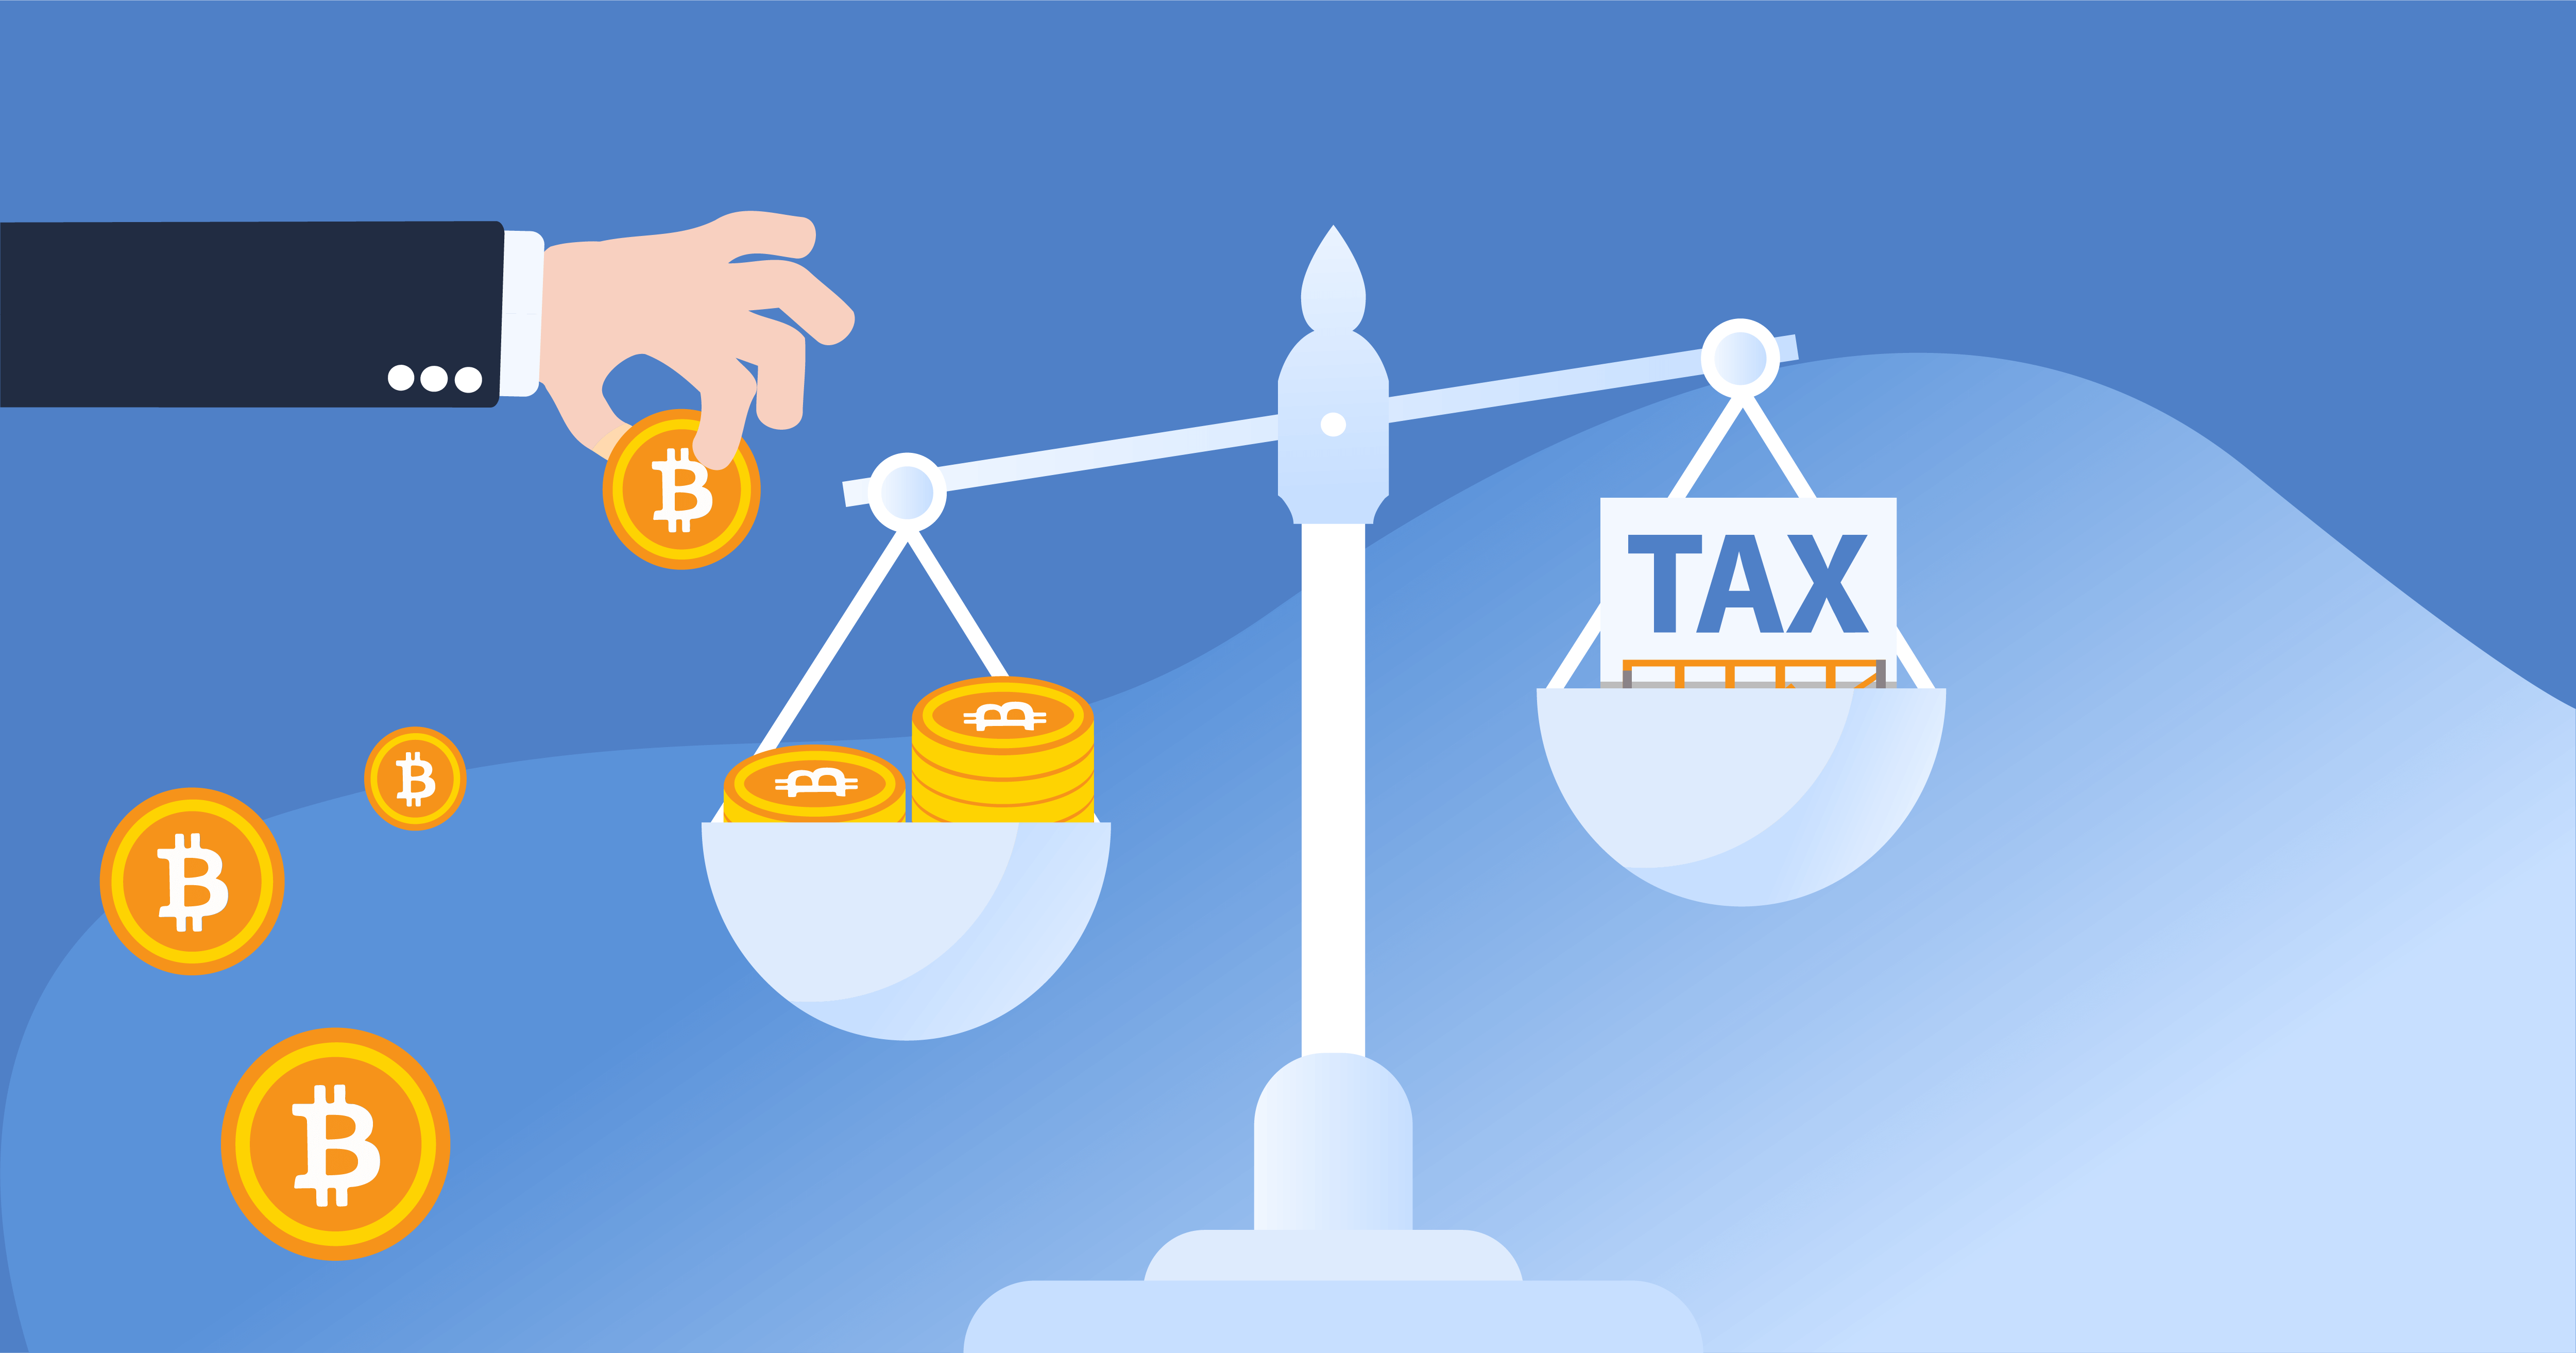 Cryptocurrency Tax Rates - How to Calculate Yours